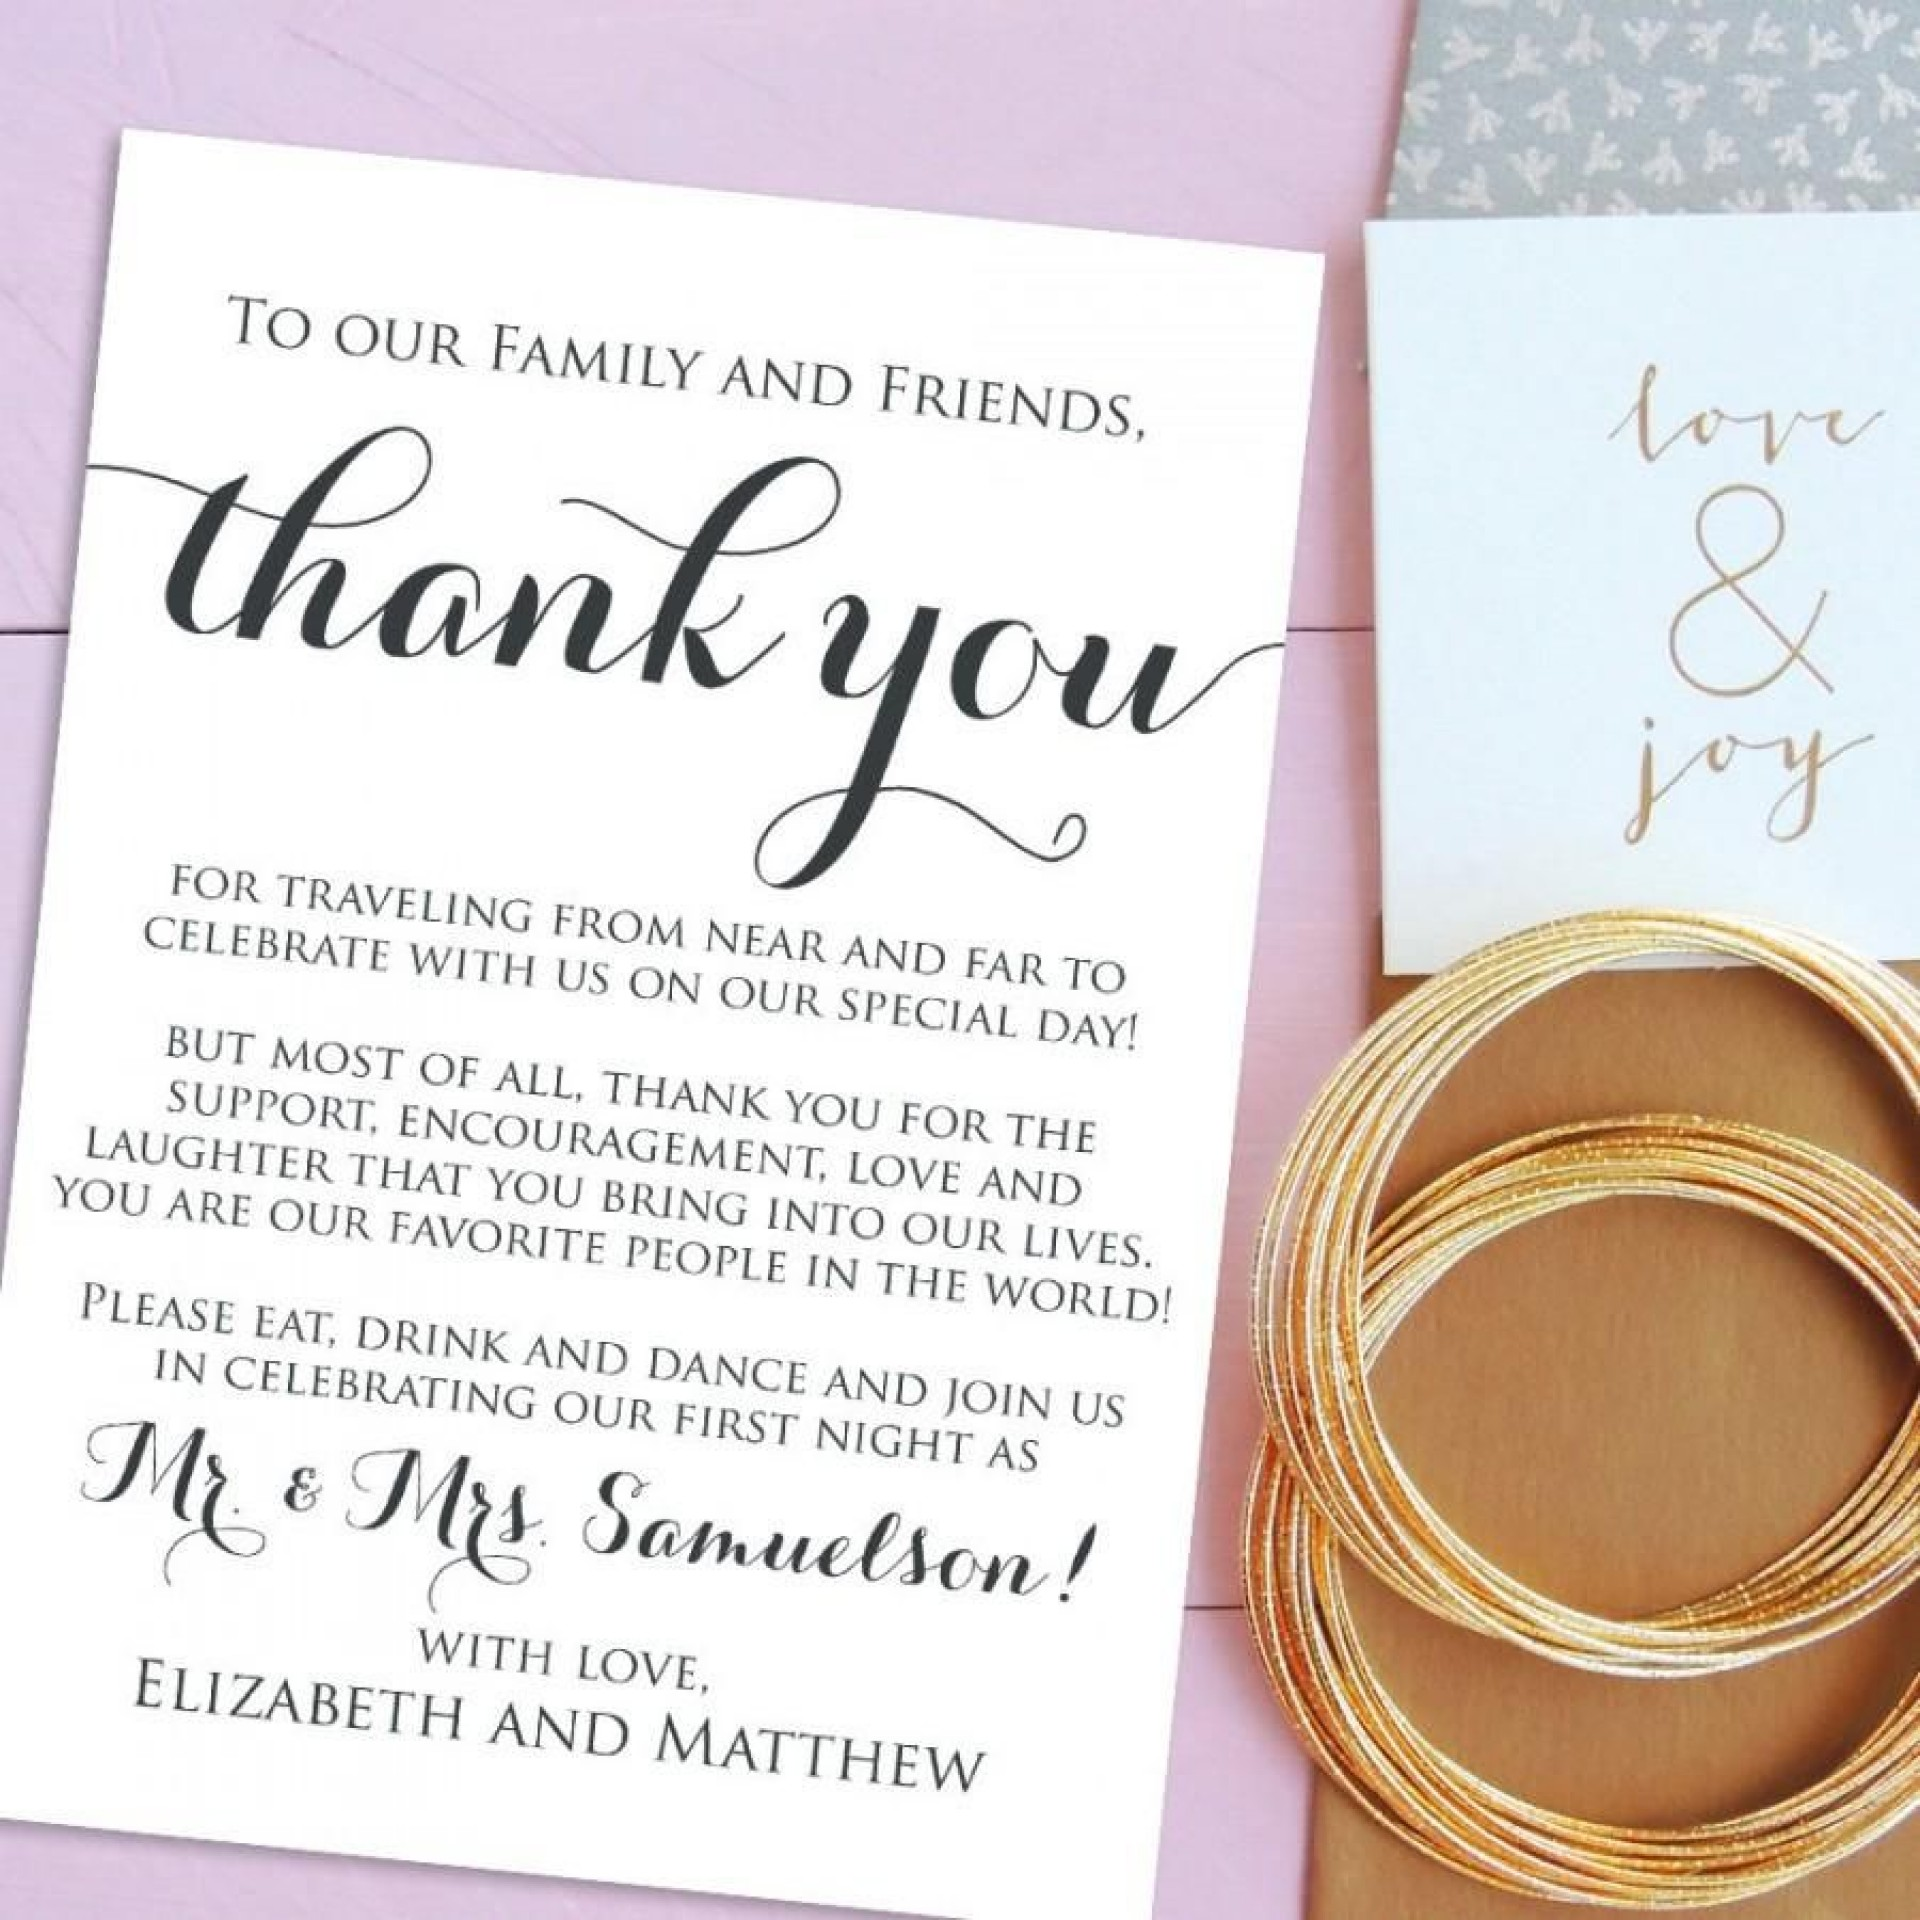 009 Rare Wedding Welcome Letter Template Free High Definition  Bag1920